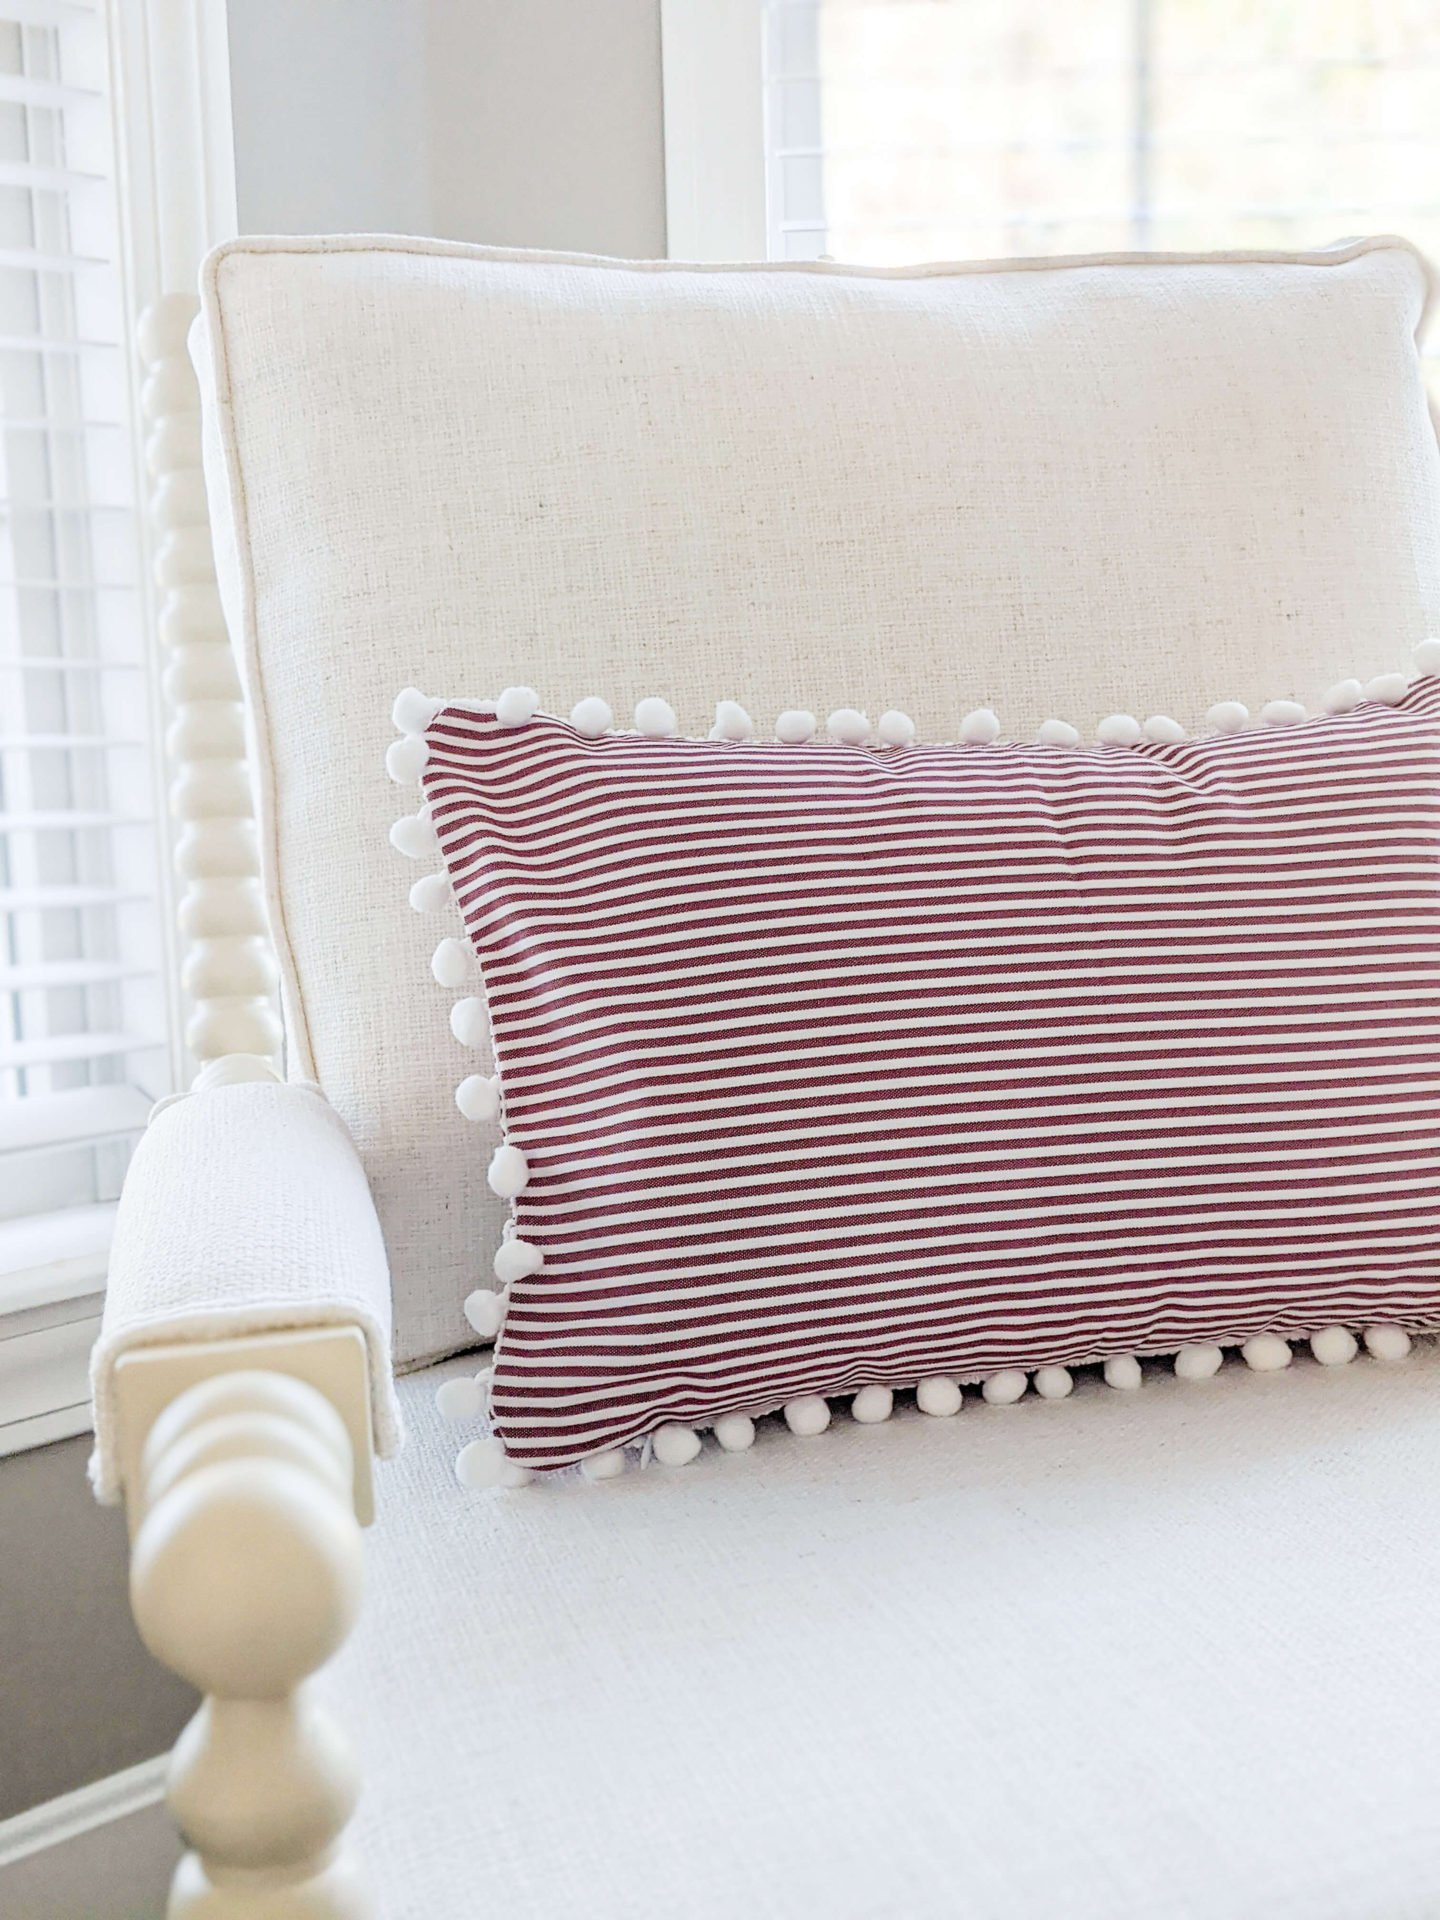 Pillows are also on my list of what to buy for Christmas decorations. This red and white striped pillow cover is such a great deal!